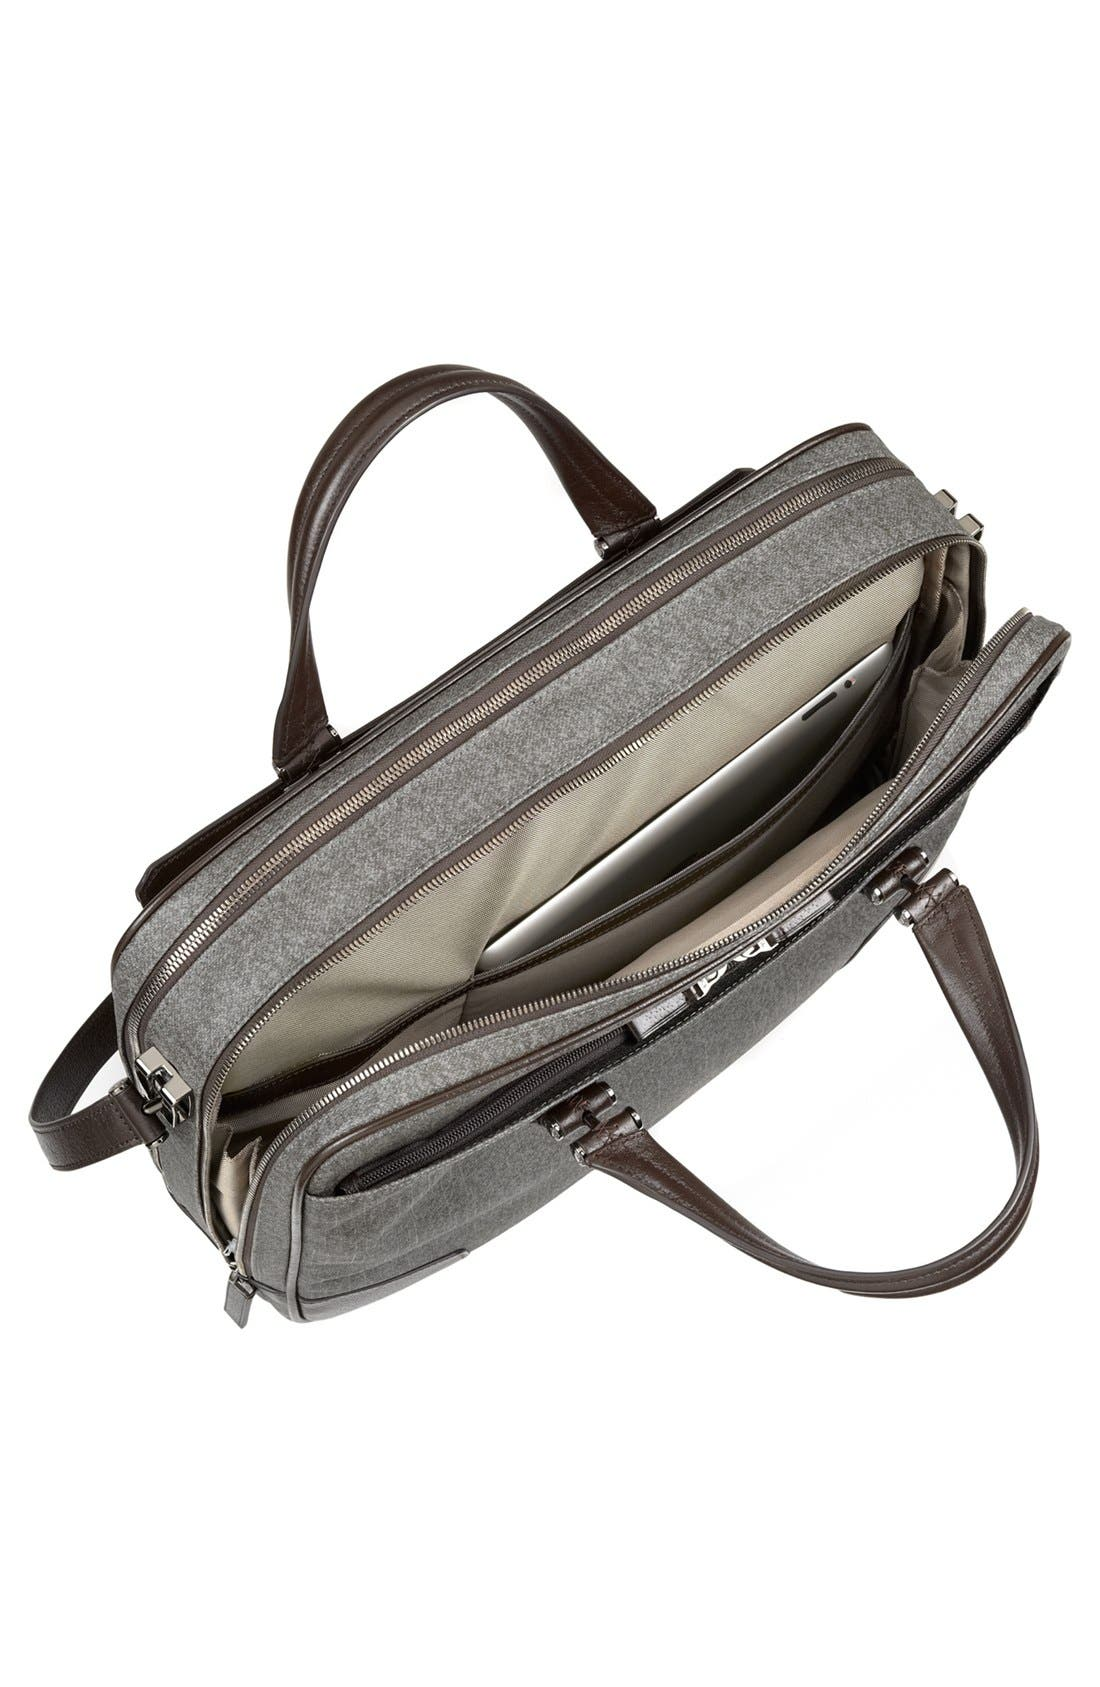 'Astor Ansonia' Zip Top Coated Canvas Laptop Briefcase,                             Alternate thumbnail 6, color,                             068